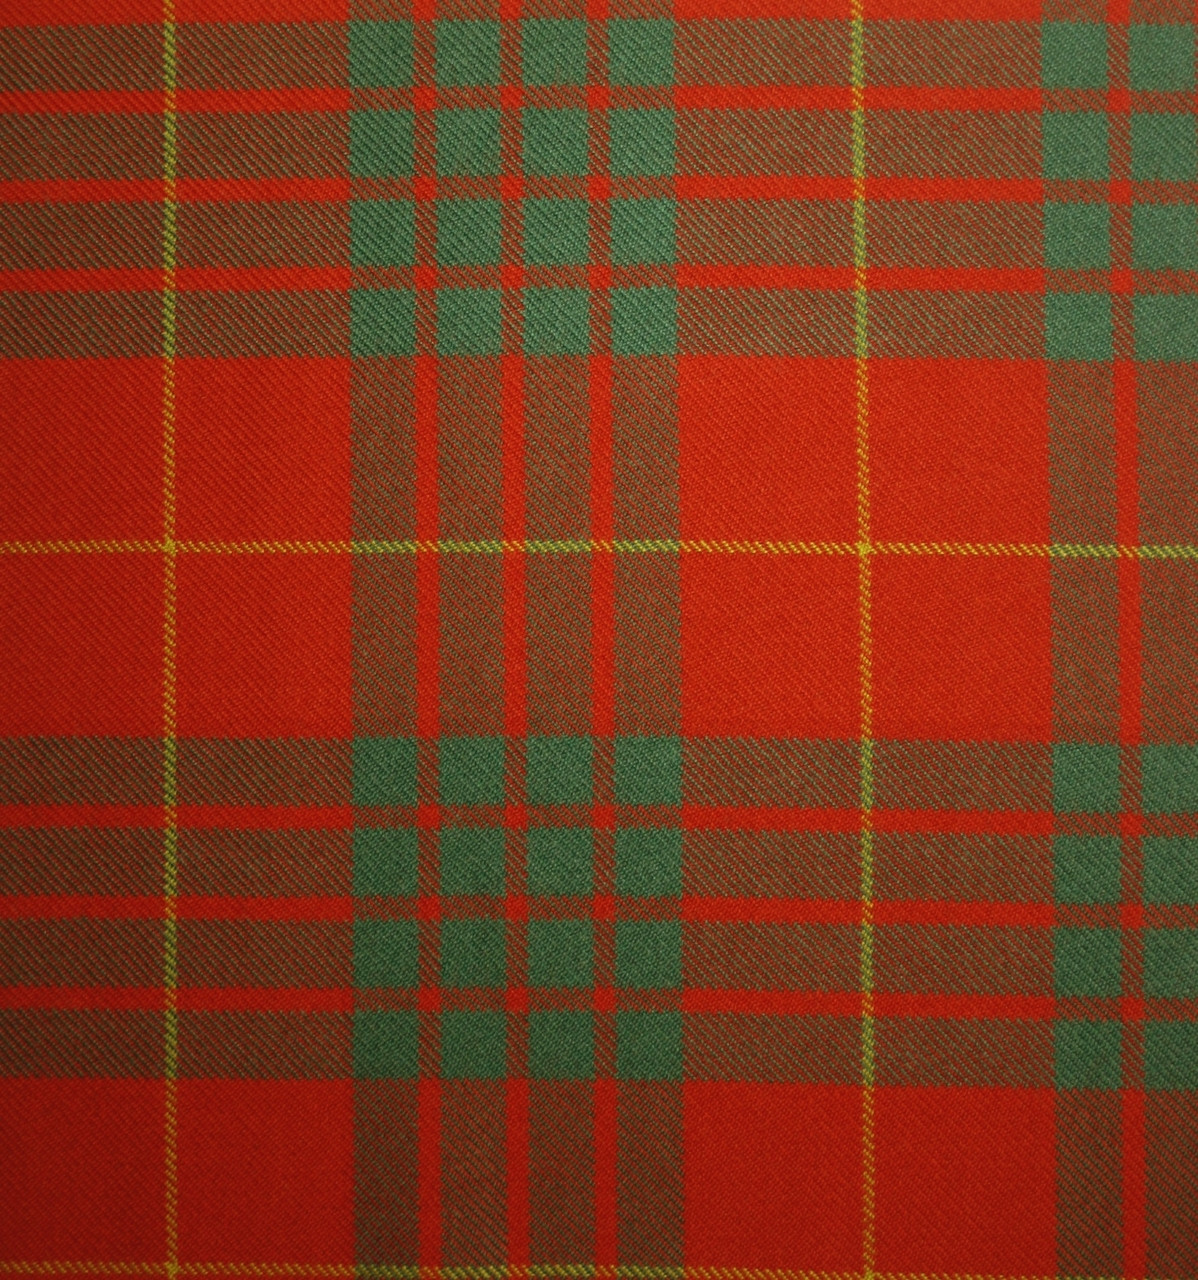 Scottish Kilt Tartans - Cameron of Erracht, Clan Tartans ...